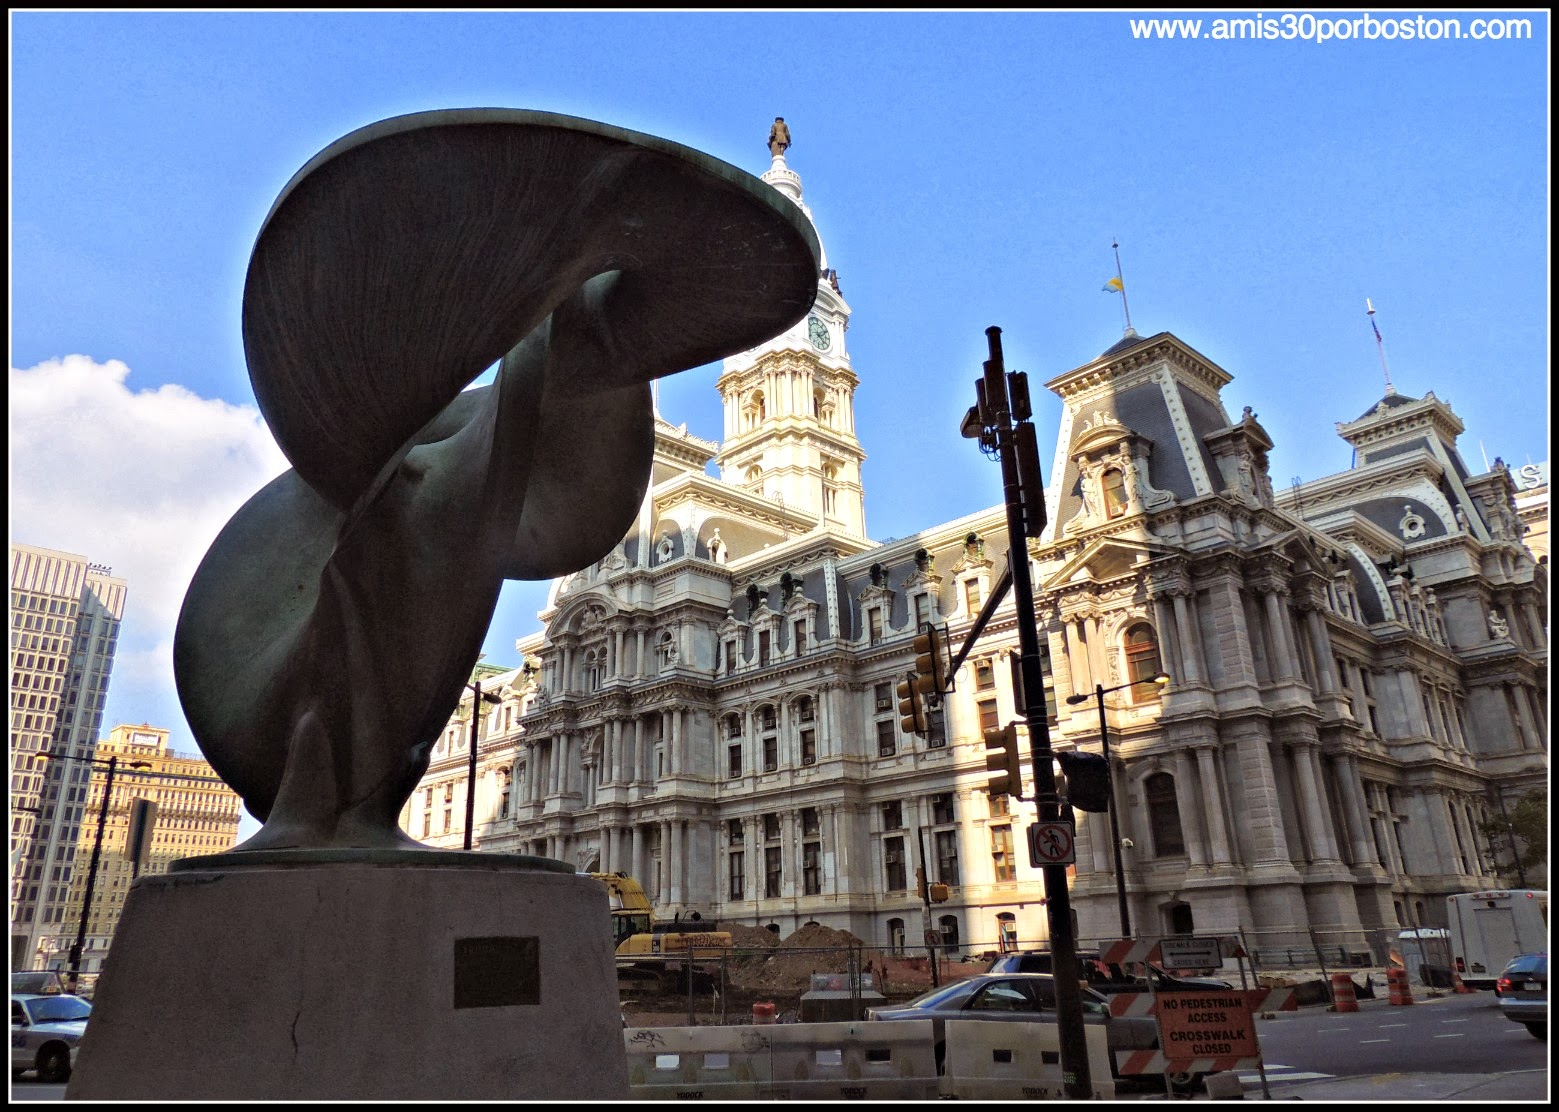 Filadelfia: City Hall